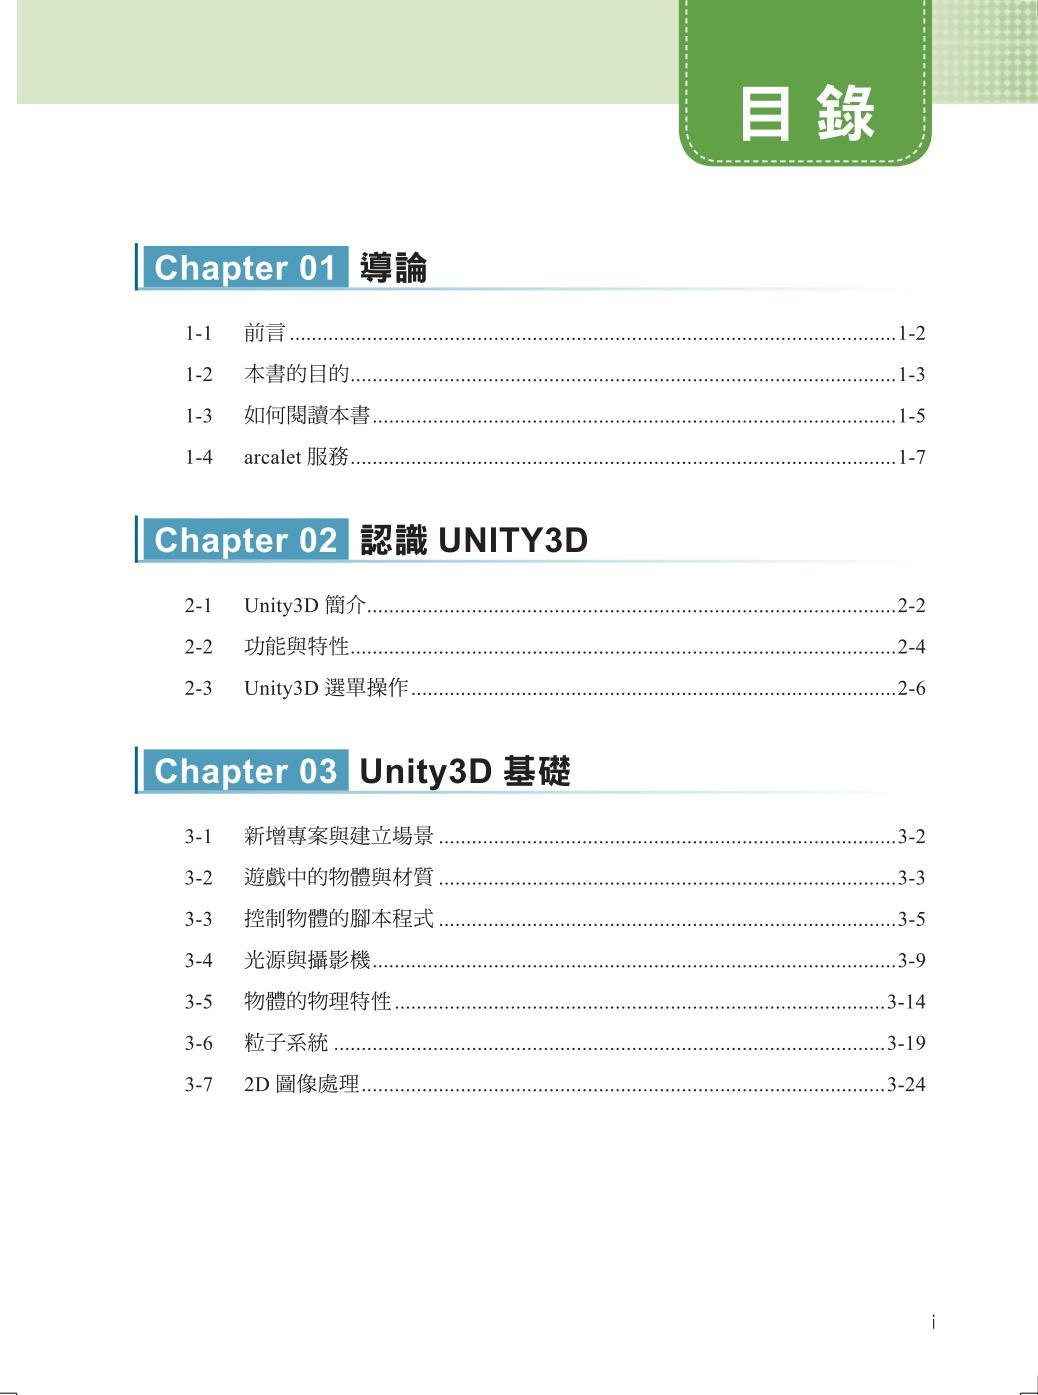 unity 3D : arcalet多人連線開發遊戲 (舊版: 使用 Unity 3D─進行 arcalet 多人連線遊戲)-preview-1